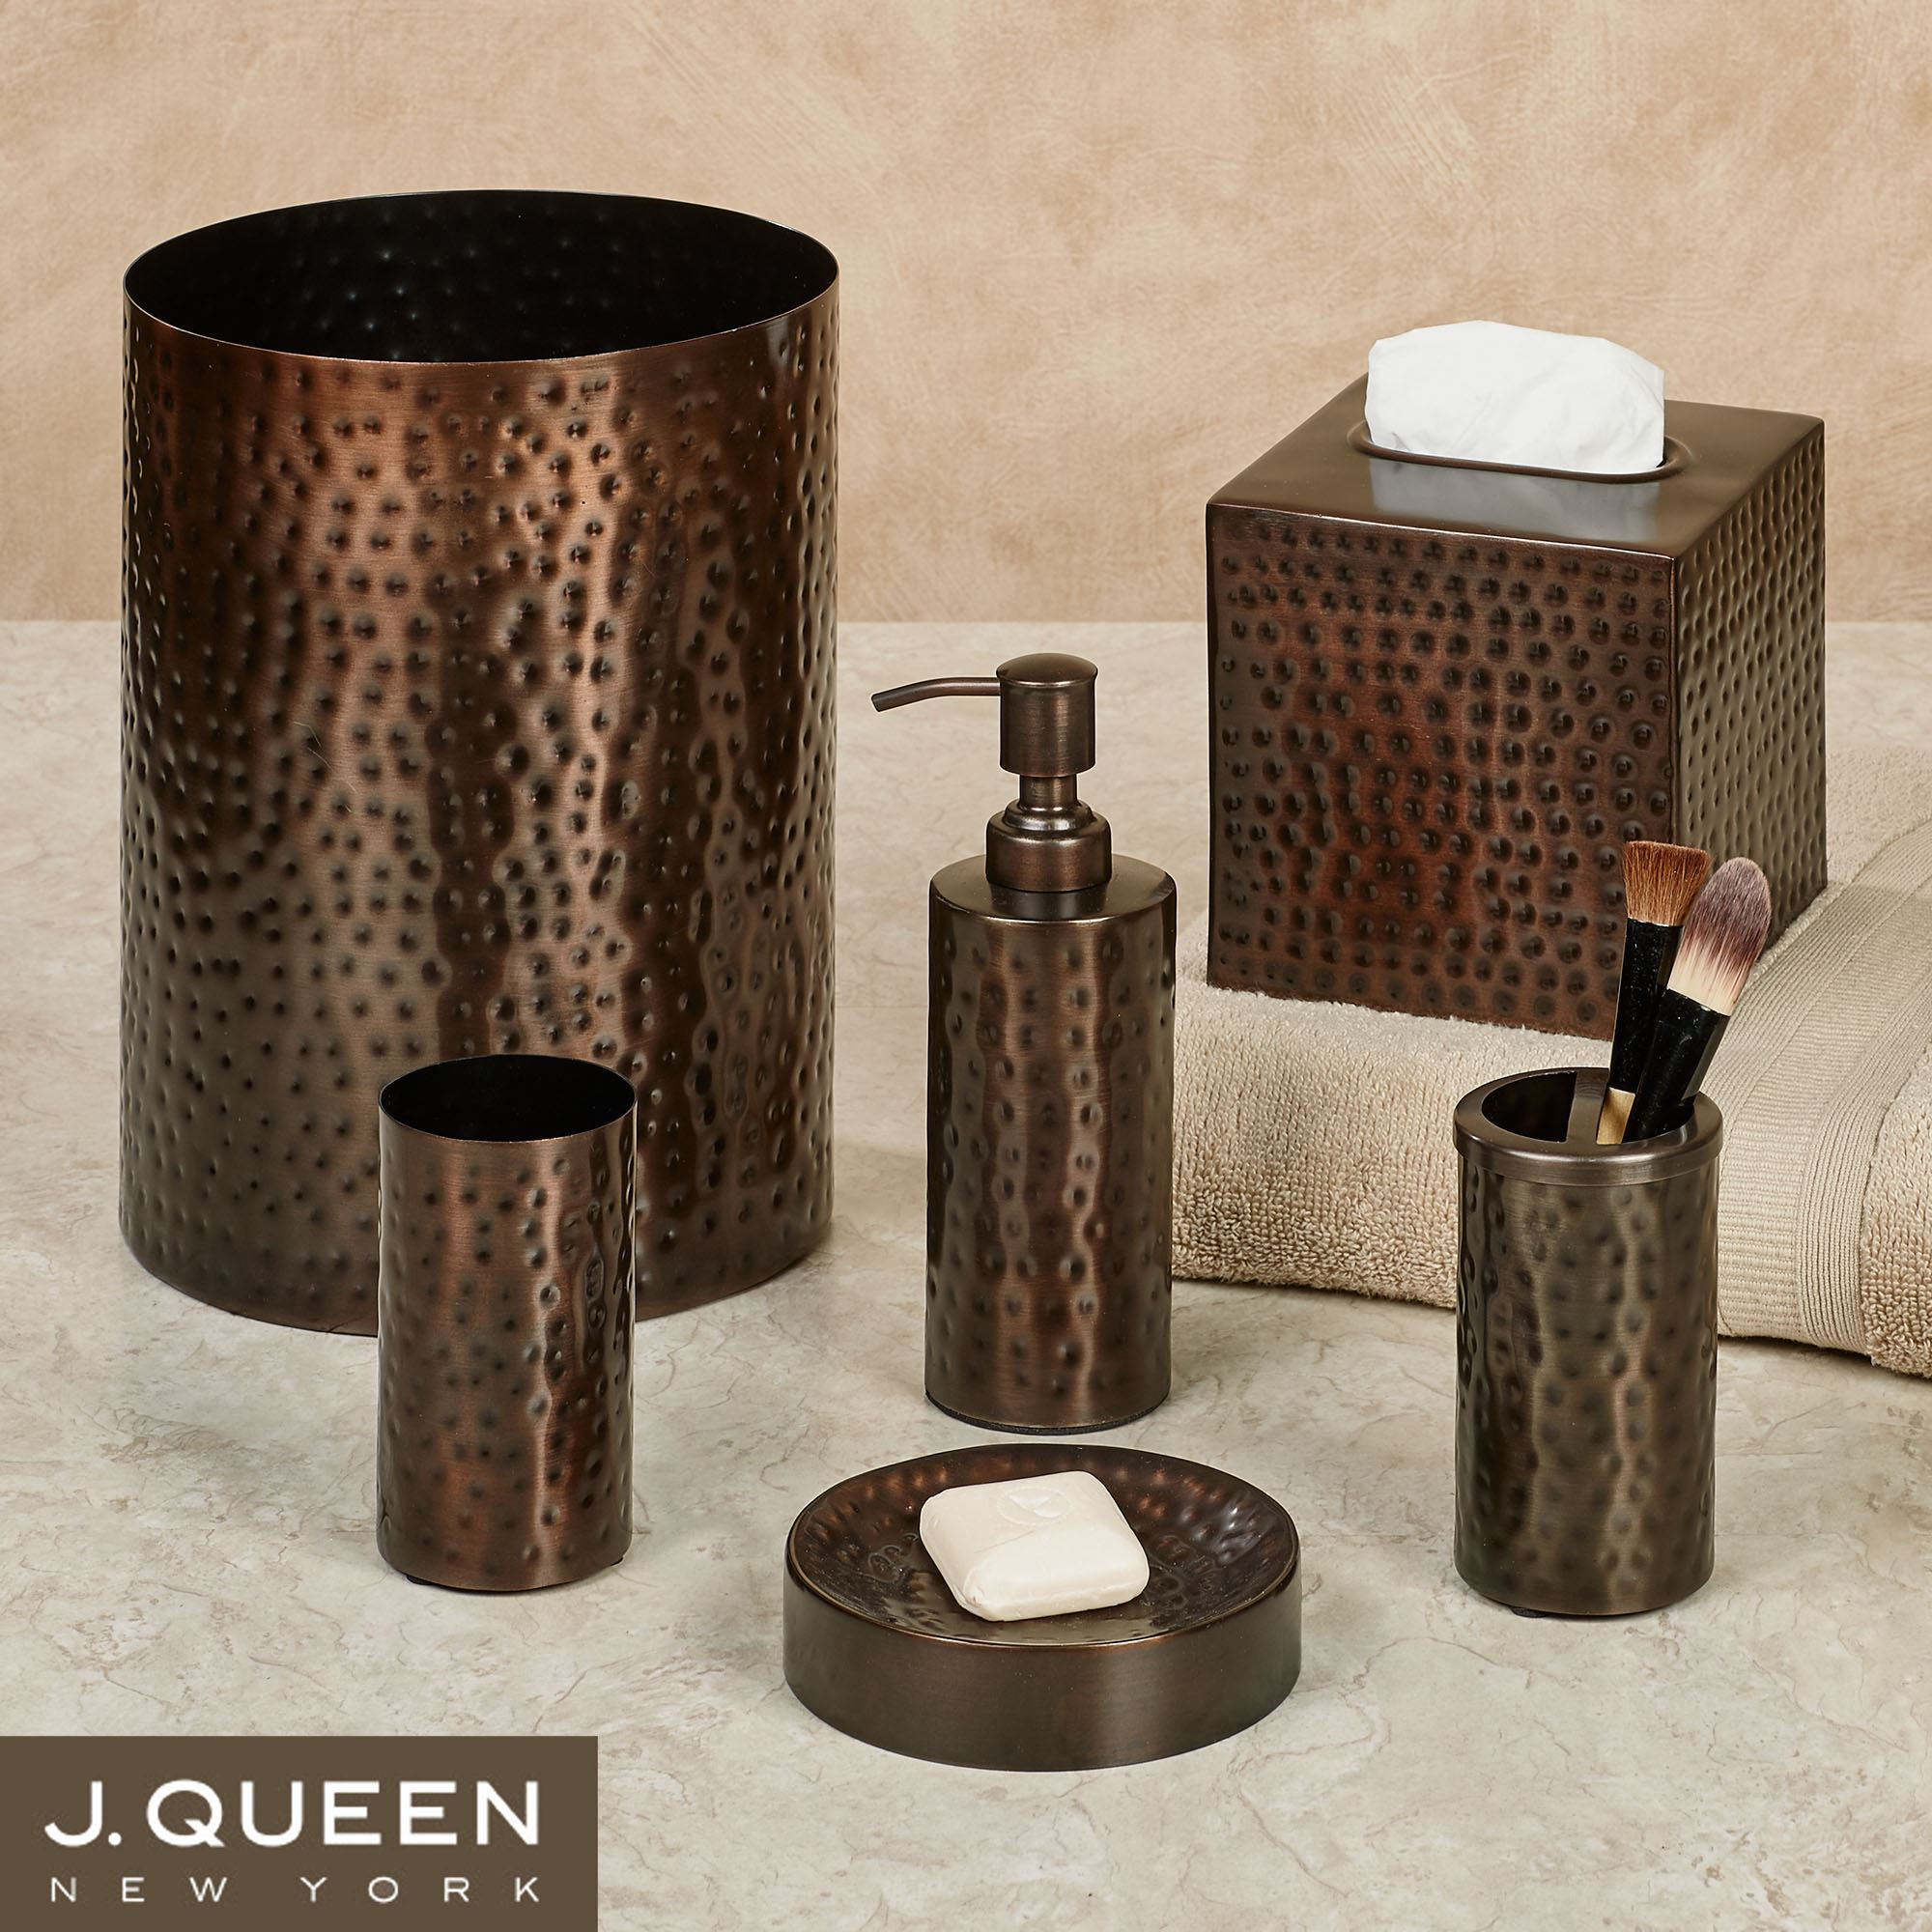 Pressed metal bronze bath accessories by j queen new york - Rubbed oil bronze bathroom accessories ...